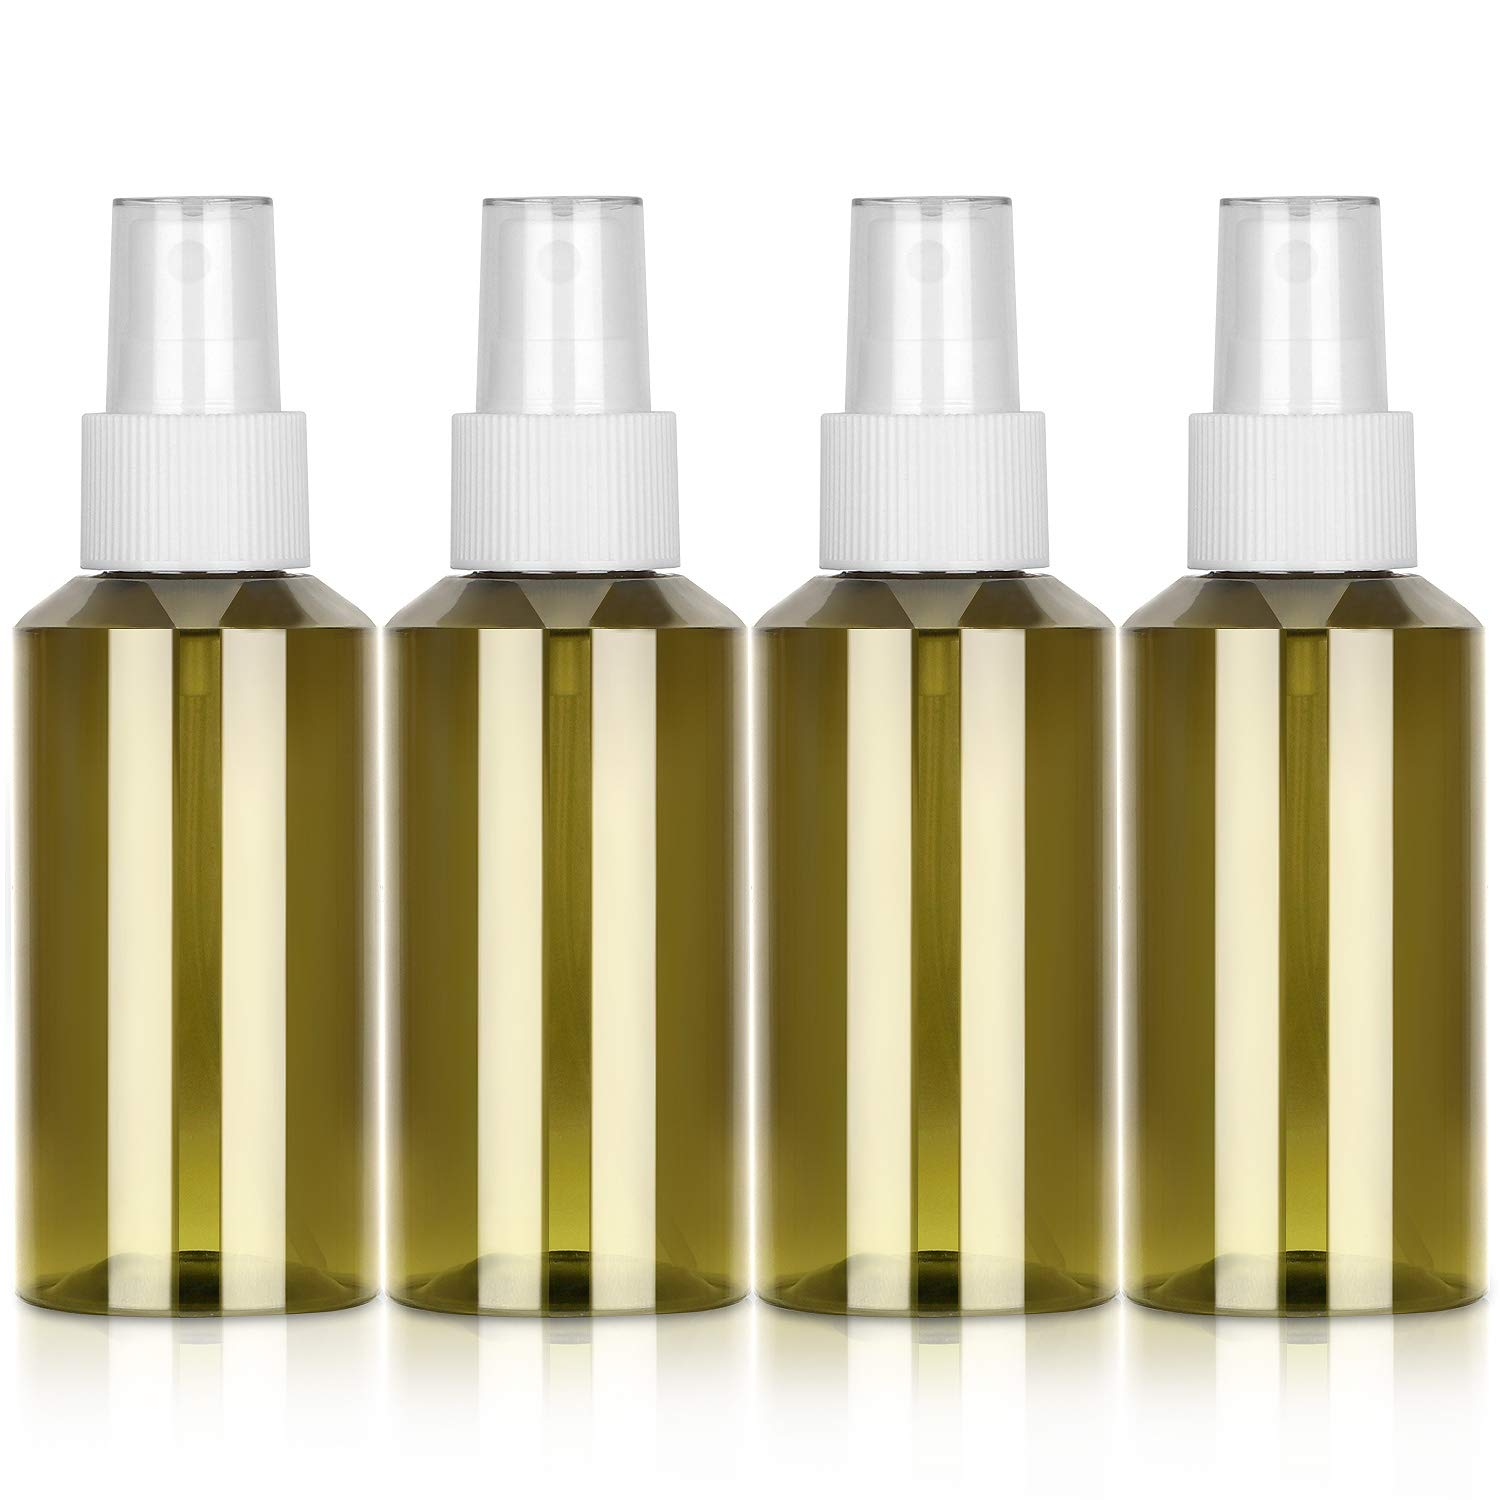 3.4 oz Travel Size Empty Spray Bottles for Essential Oils and Cleaning Solutions, Leak Proof Fine Mist Spray Bottle for Homemade Cleaner and Skin Care Products, 4 Pack